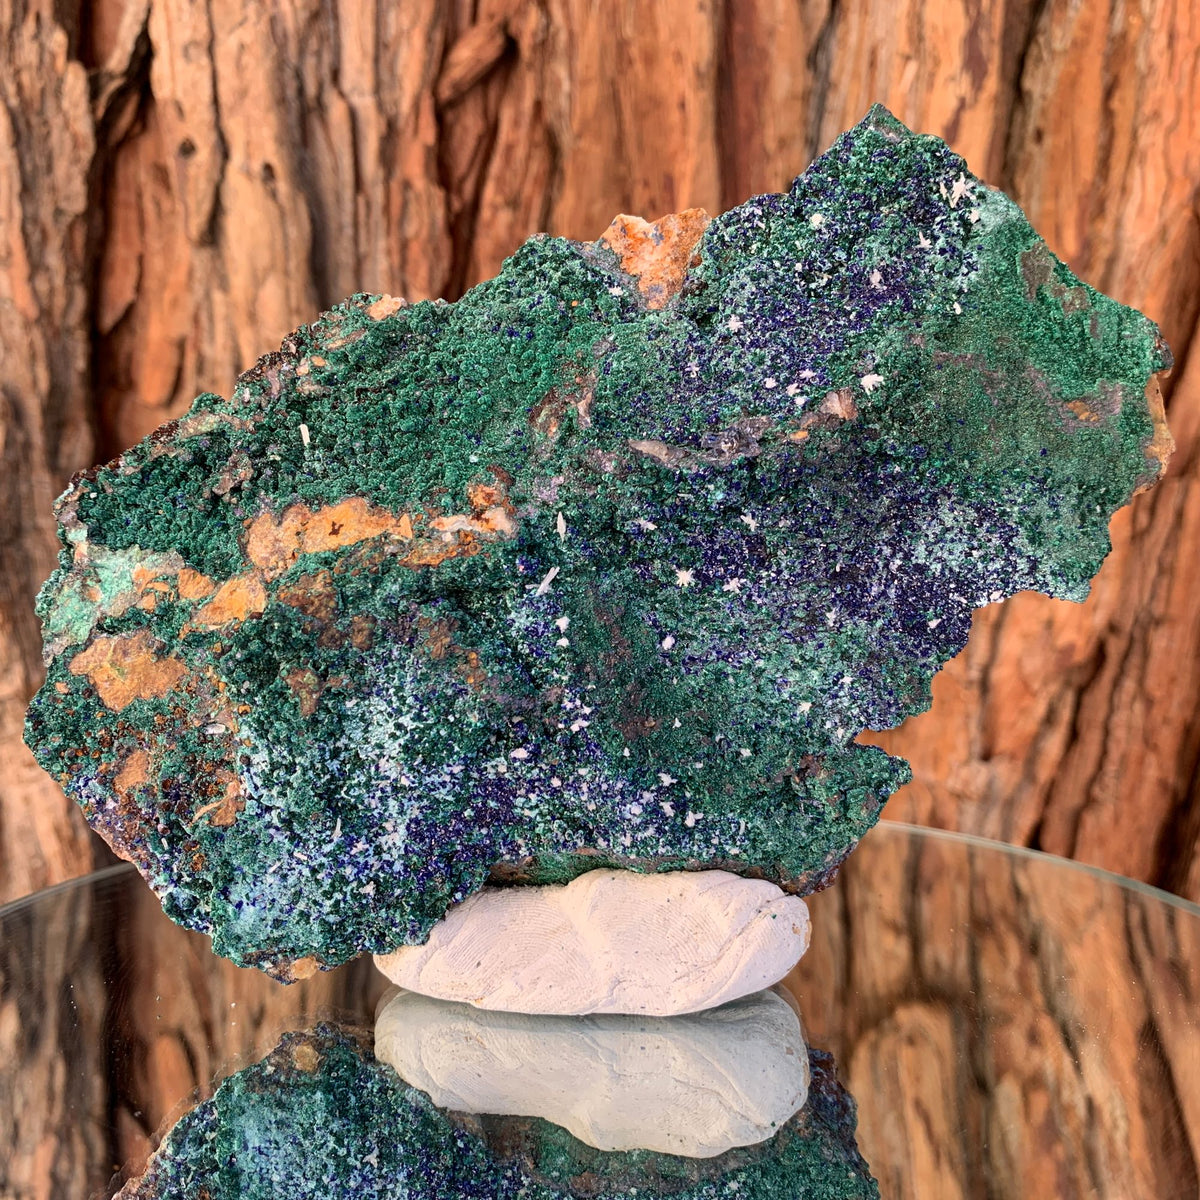 15.7cm 330g Azurite, Brochantite, Malachite, Quartz from Bou Beker, Morocco